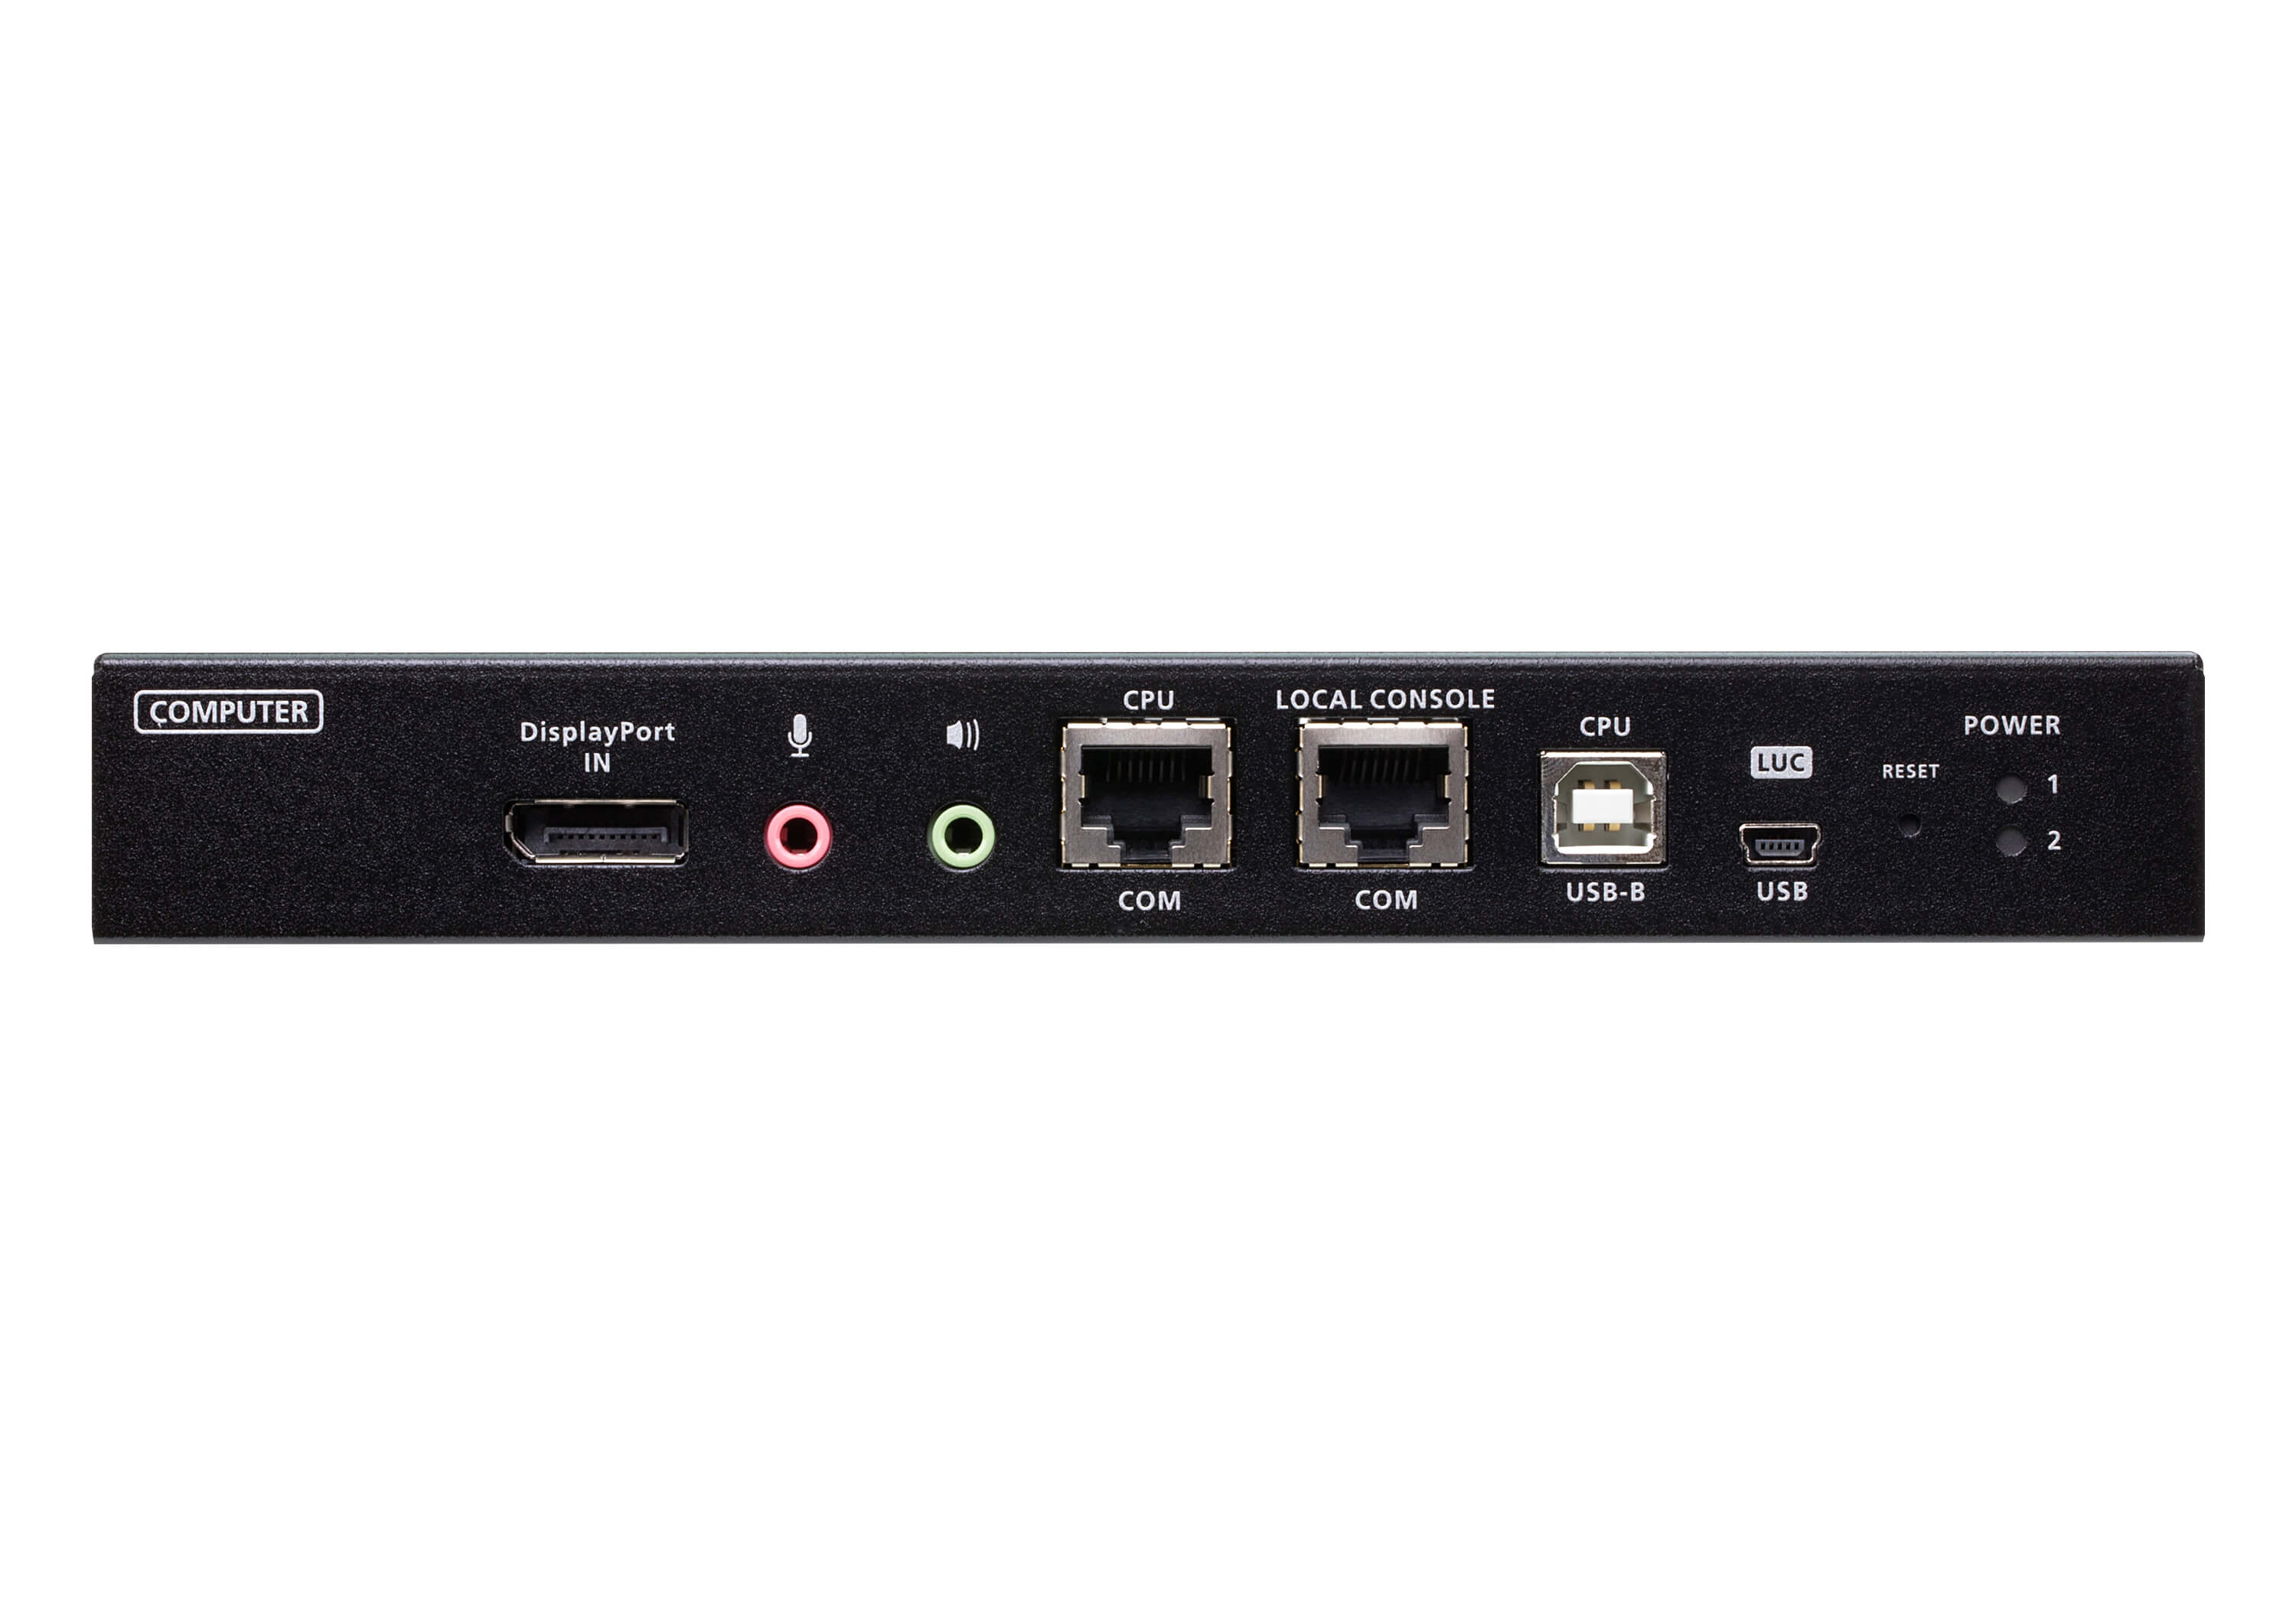 1-Local/Remote Share Access Single Port 4K DisplayPort KVM over IP Switch-3